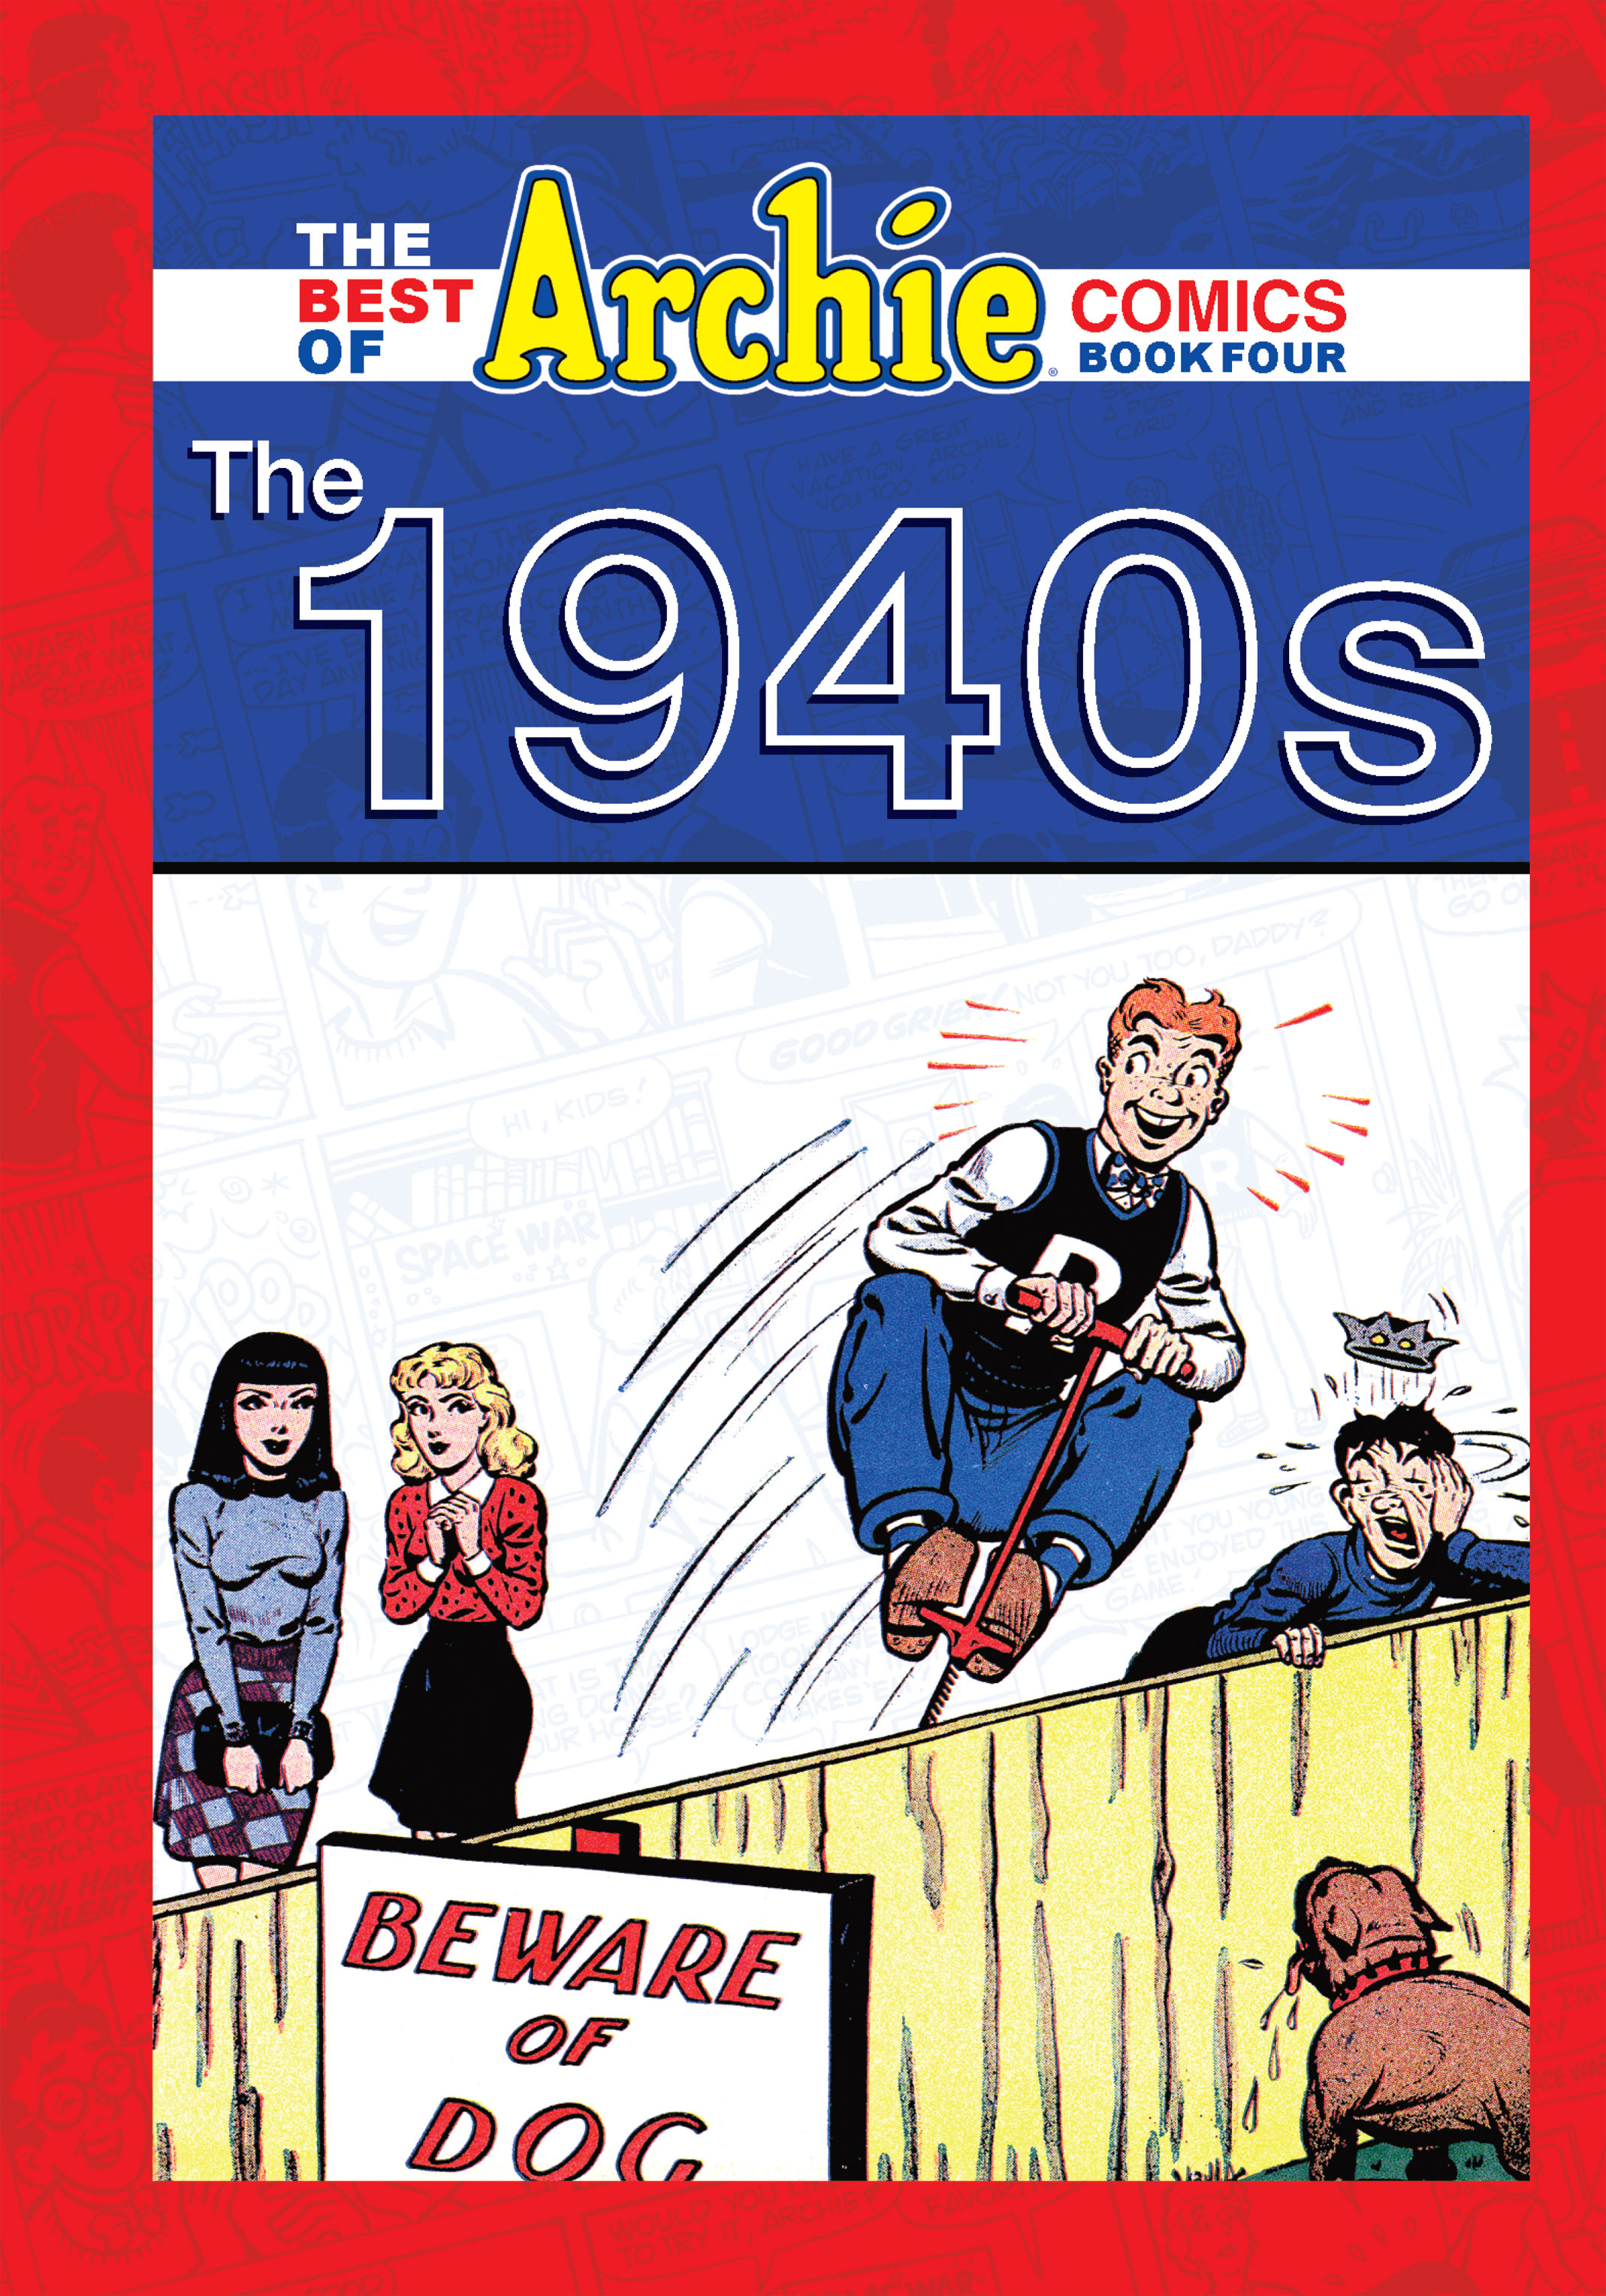 Read online The Best of Archie Comics comic -  Issue # TPB 4 (Part 1) - 6